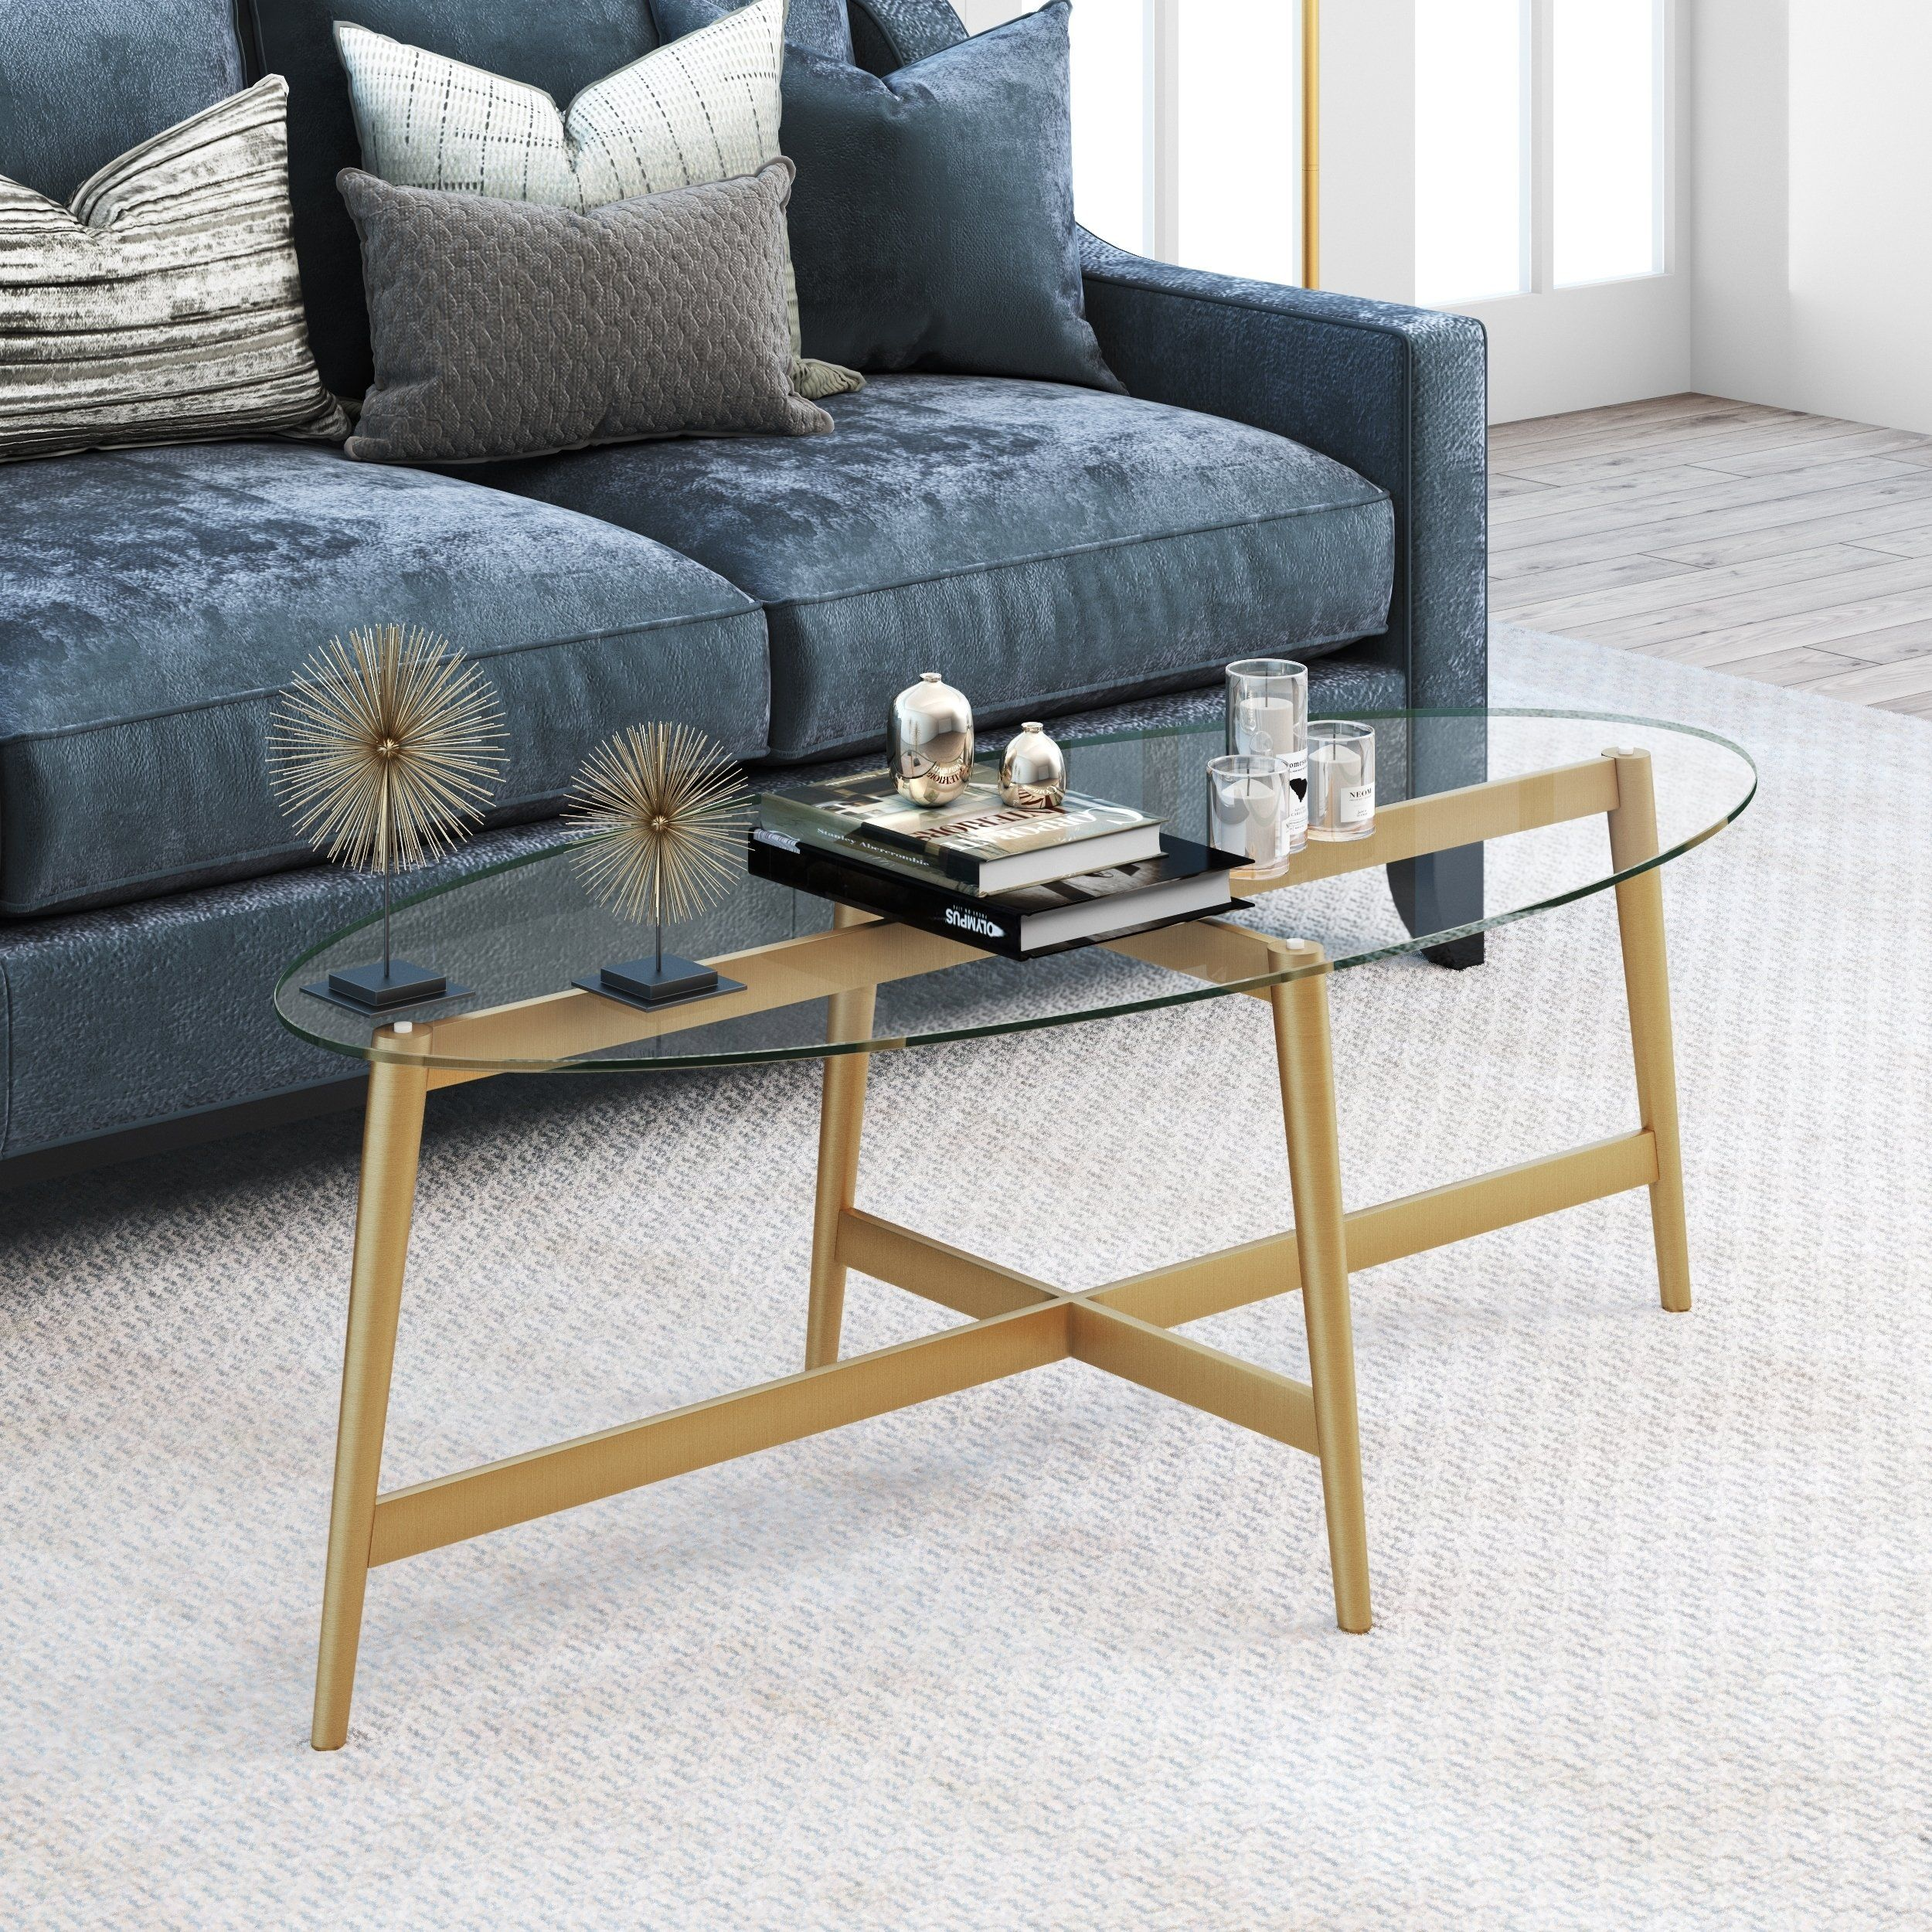 Olson Oval Gold Finish Metal Coffee Table With Glass Top In 2021 Oval Glass Coffee Table Oval Coffee Tables Coffee Table [ 2500 x 2500 Pixel ]